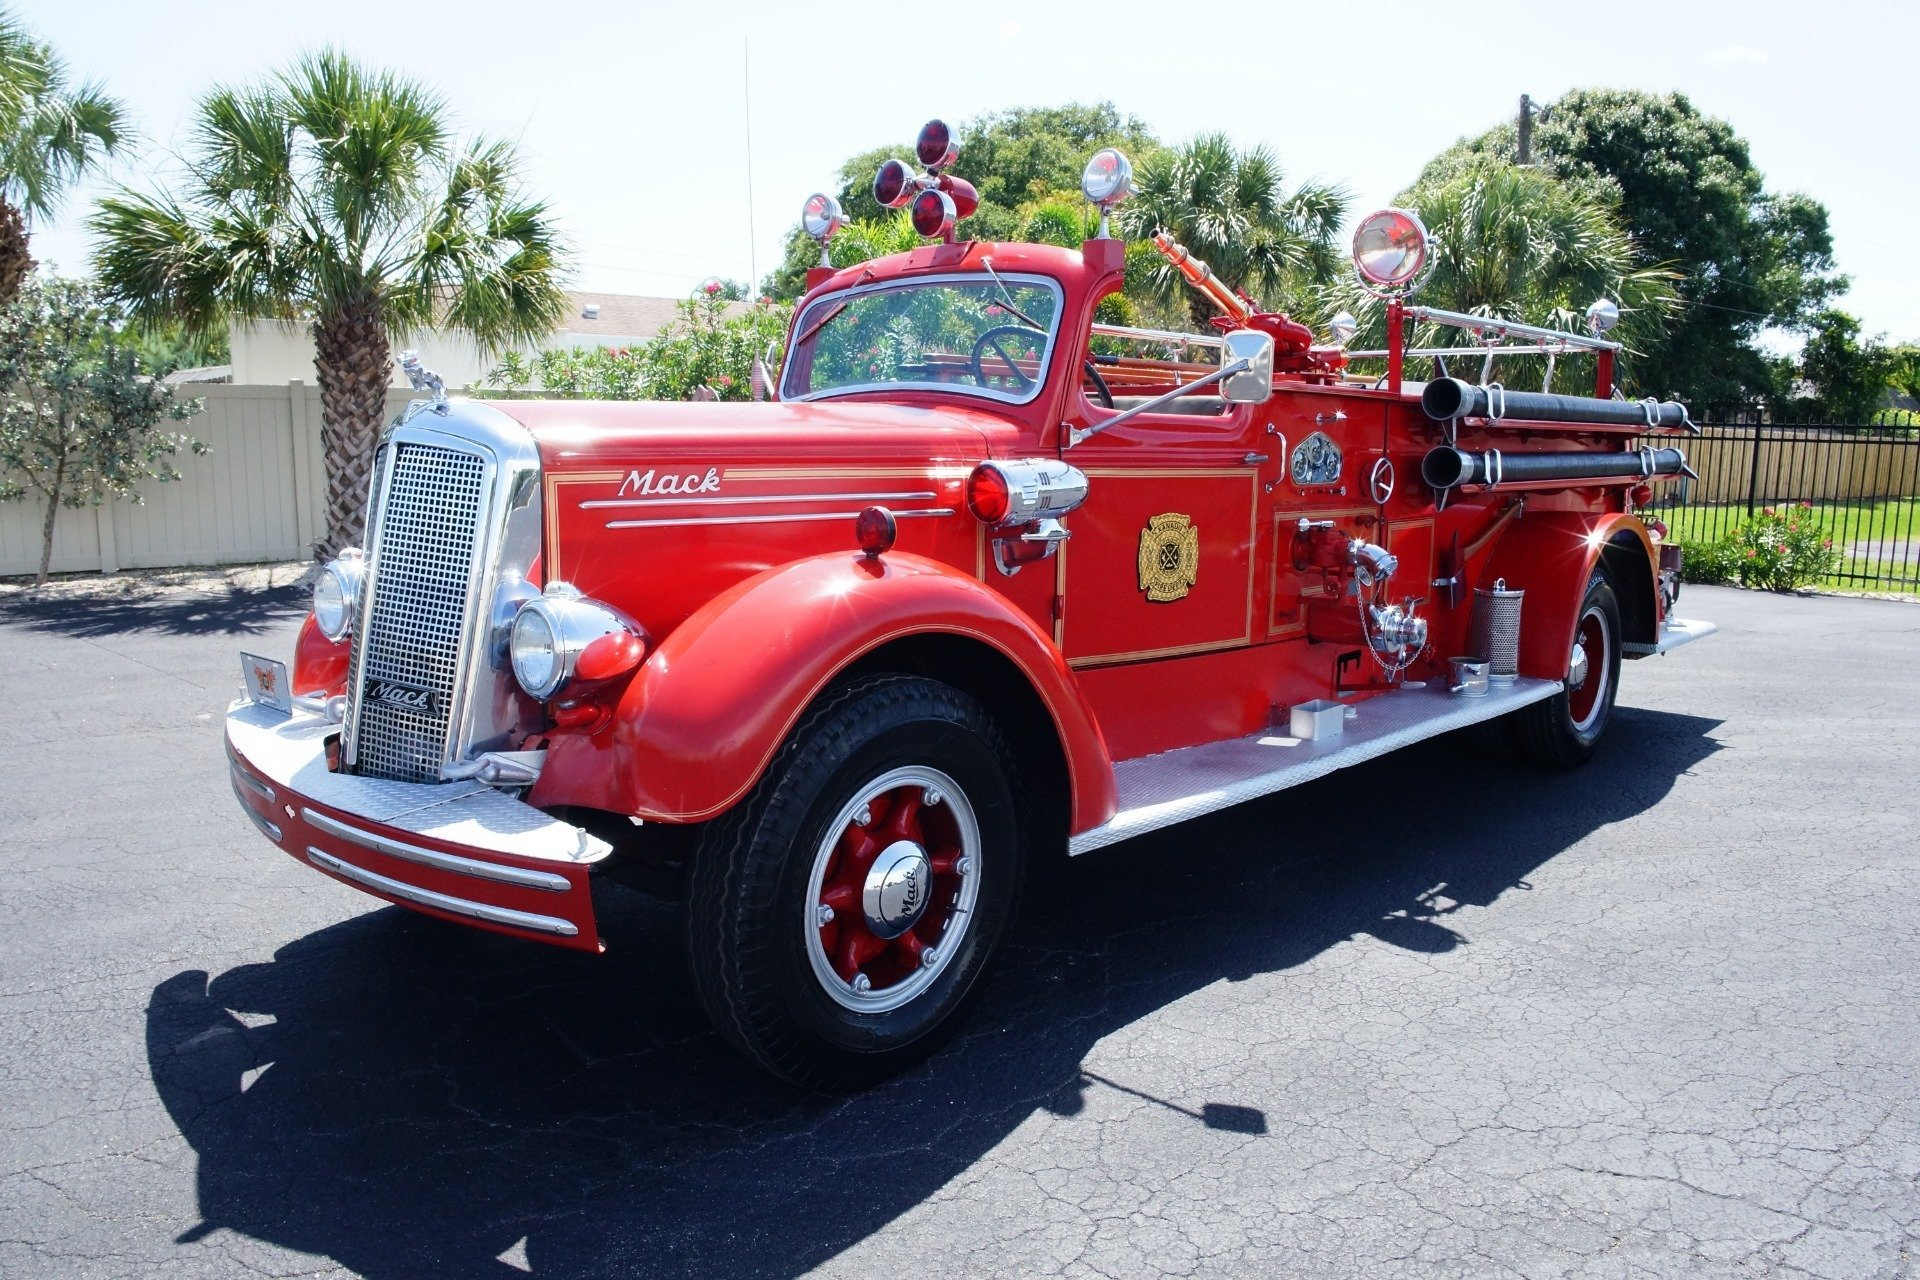 1943 mack model 505 fire truck ideal classic cars llc rh idealclassiccars net Fire Pump System Diagram 2000 Audi S4 Parts Diagram